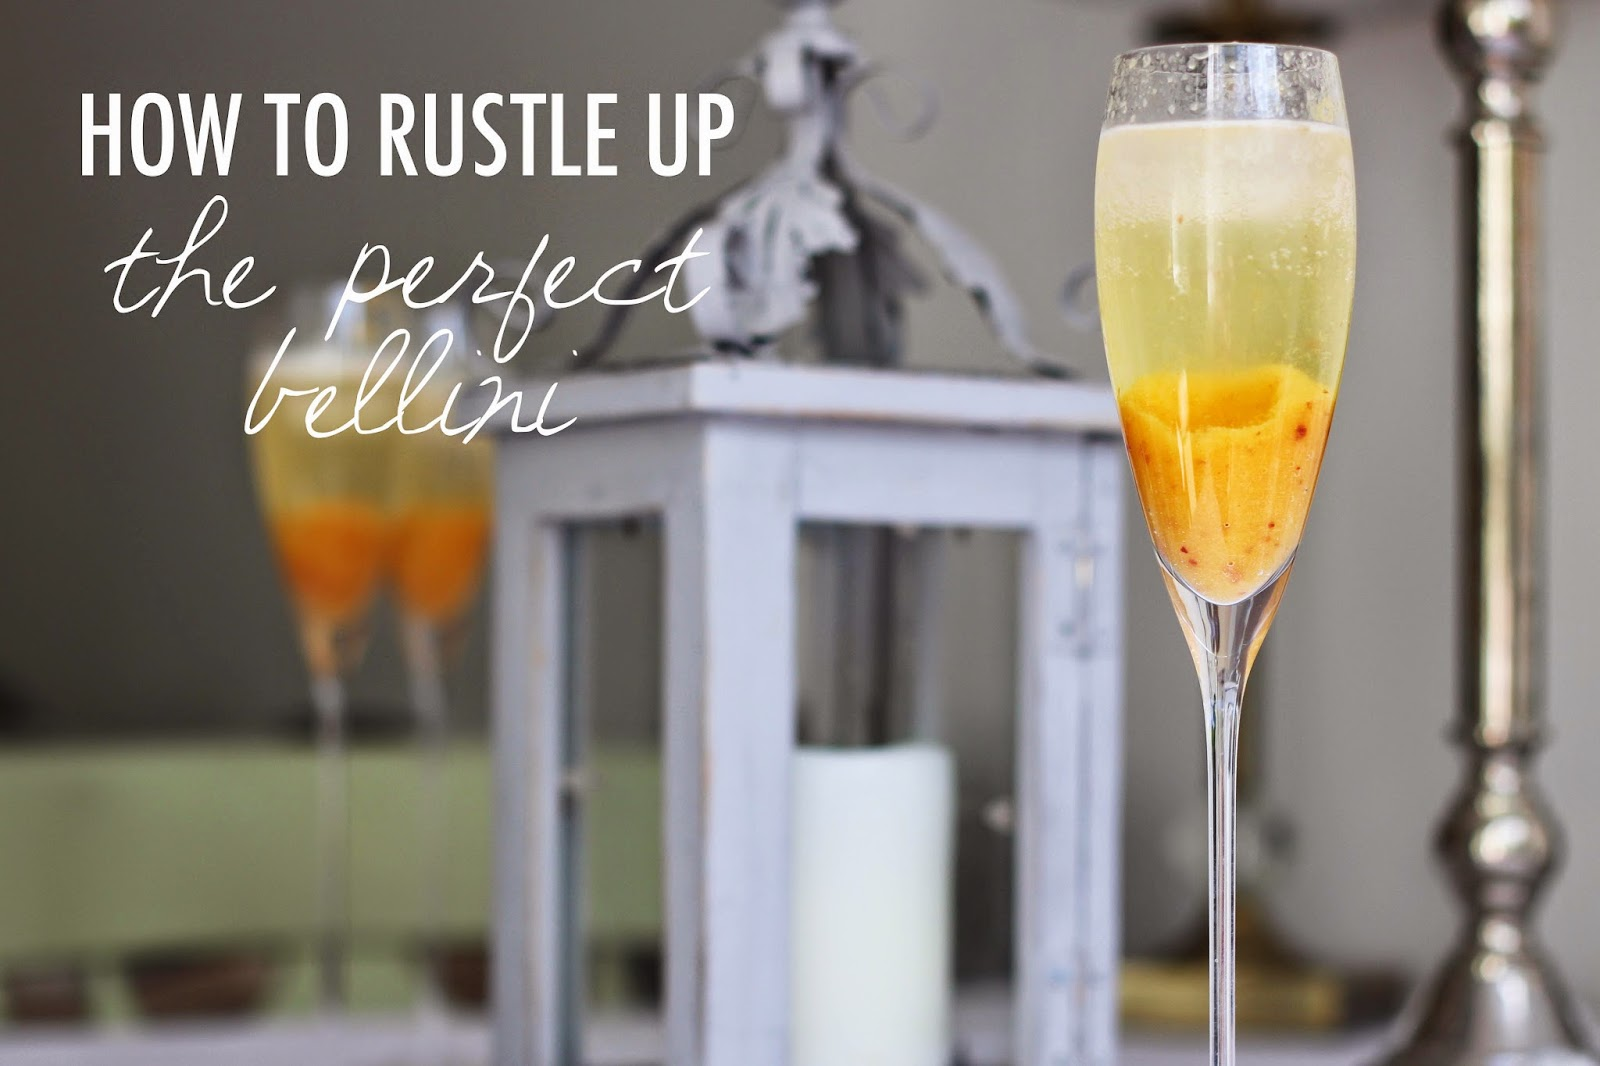 How To Rustle Up The Perfect Bellini